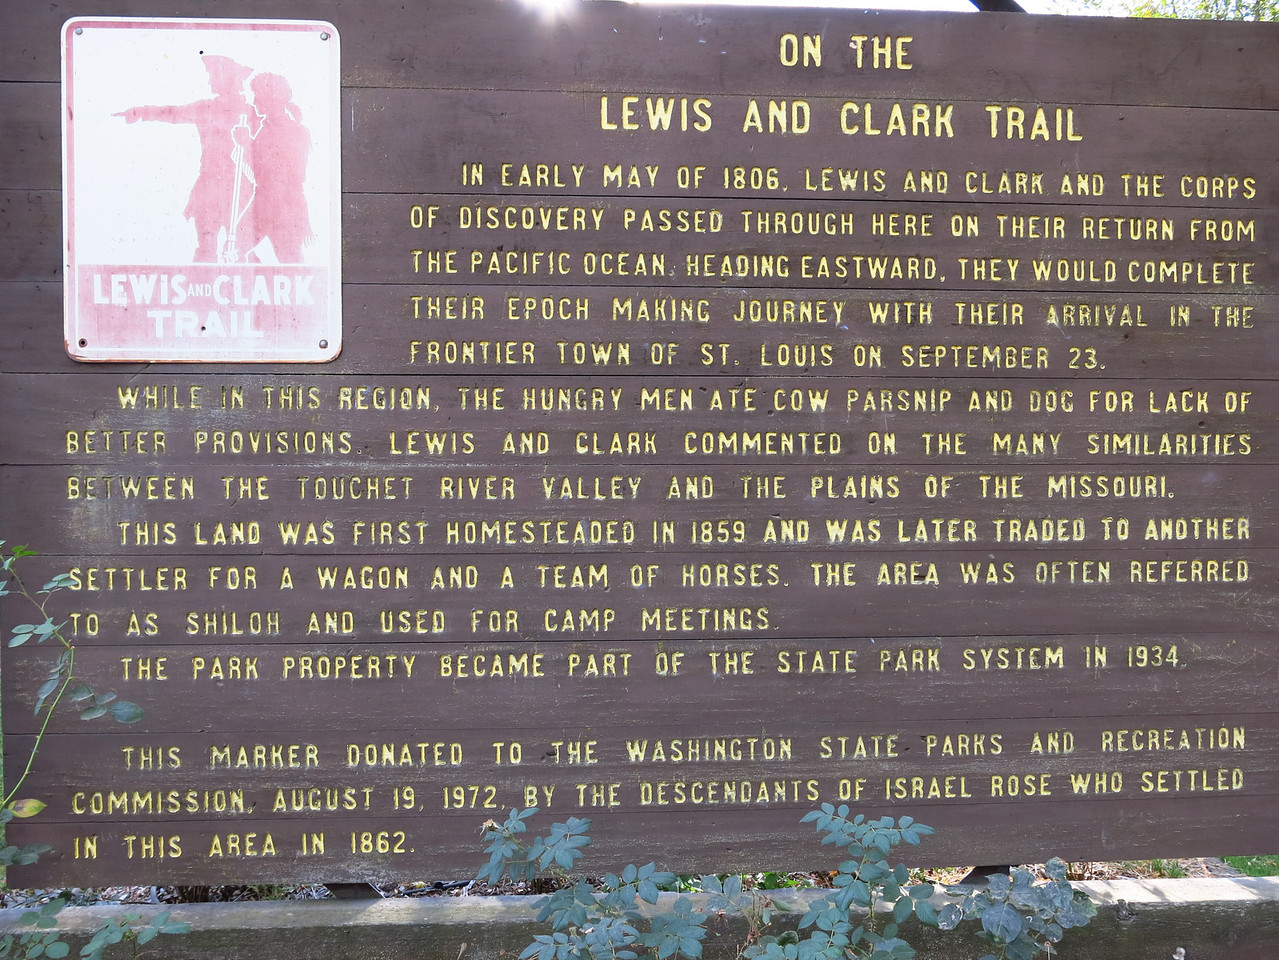 This is the sign, which describes Lewis and Clark's route through this area on their return trip from the west coast.